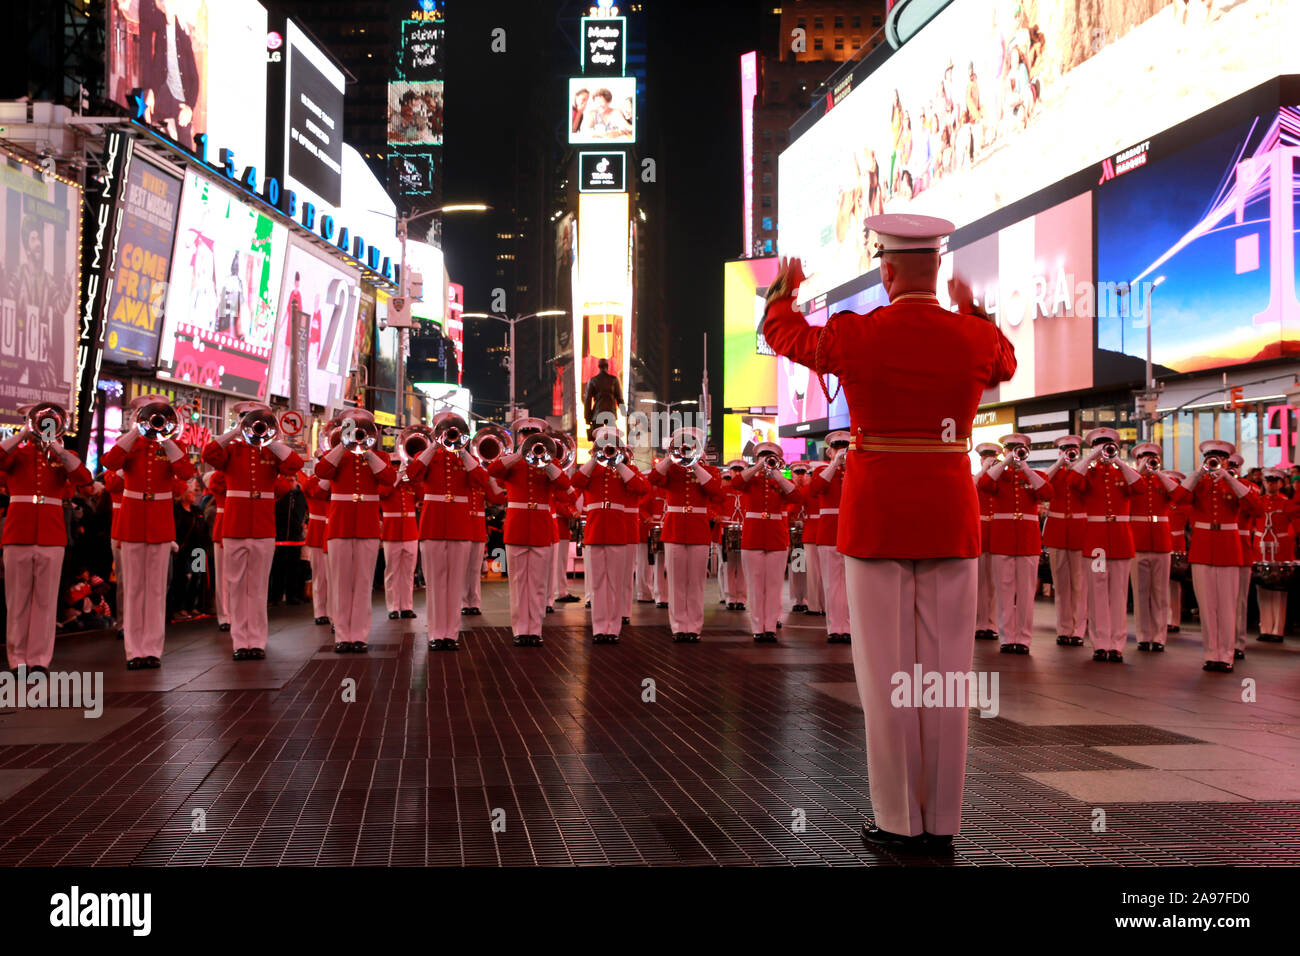 The U.S. Marine Drum and Bugle Corps conduct a musical ballad at Times Square in honor of the Marine Corps' 244th Birthday November 10, 2019 in New York City, New York. Stock Photo